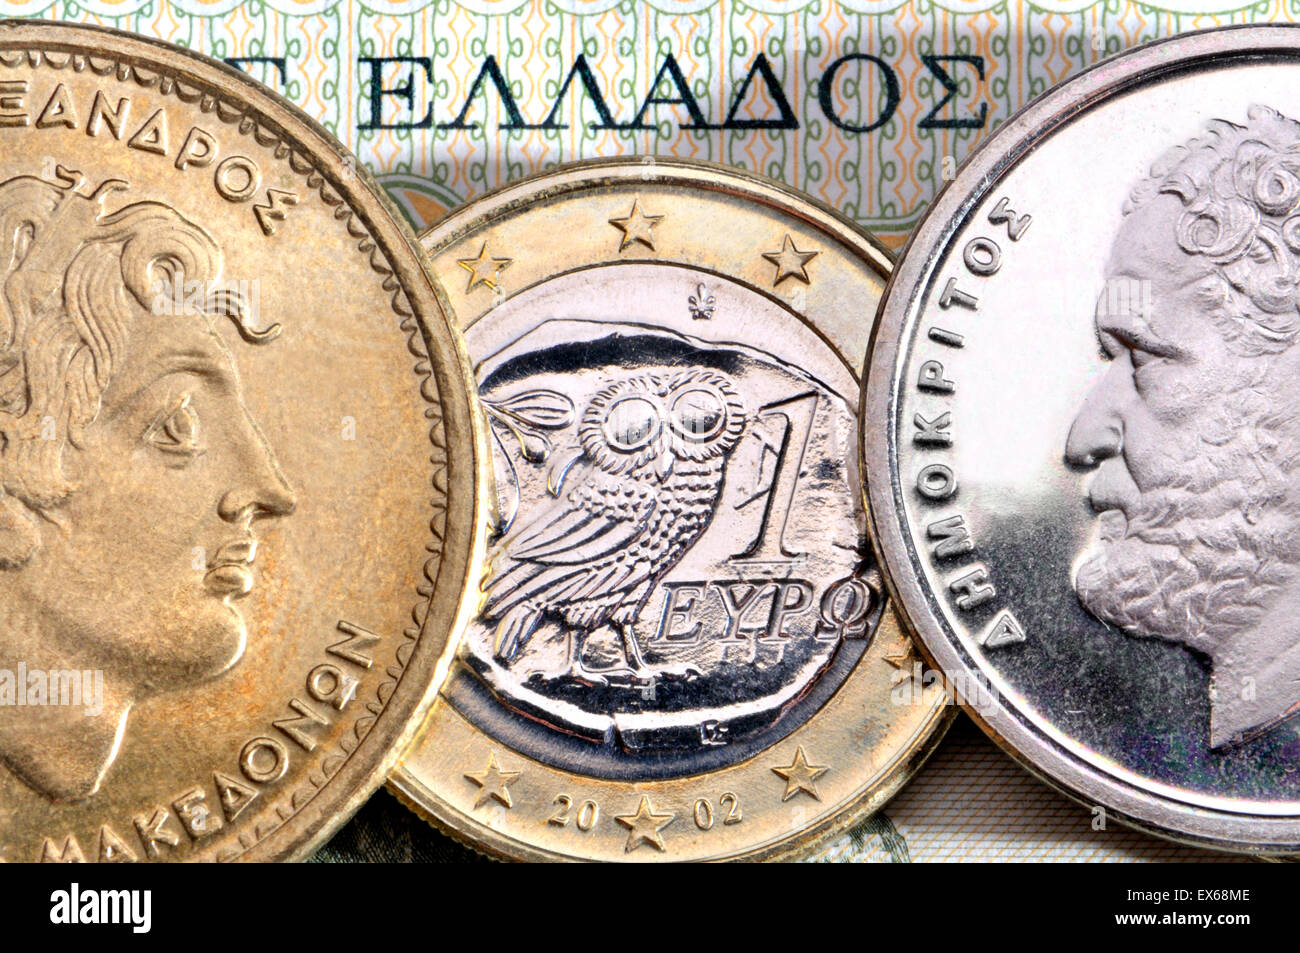 Greek currency - drachmas and Euro. Alexander the Great (100 drachmas) and Demokritus (10 drachmas) and 1 Euro coin - Stock Image